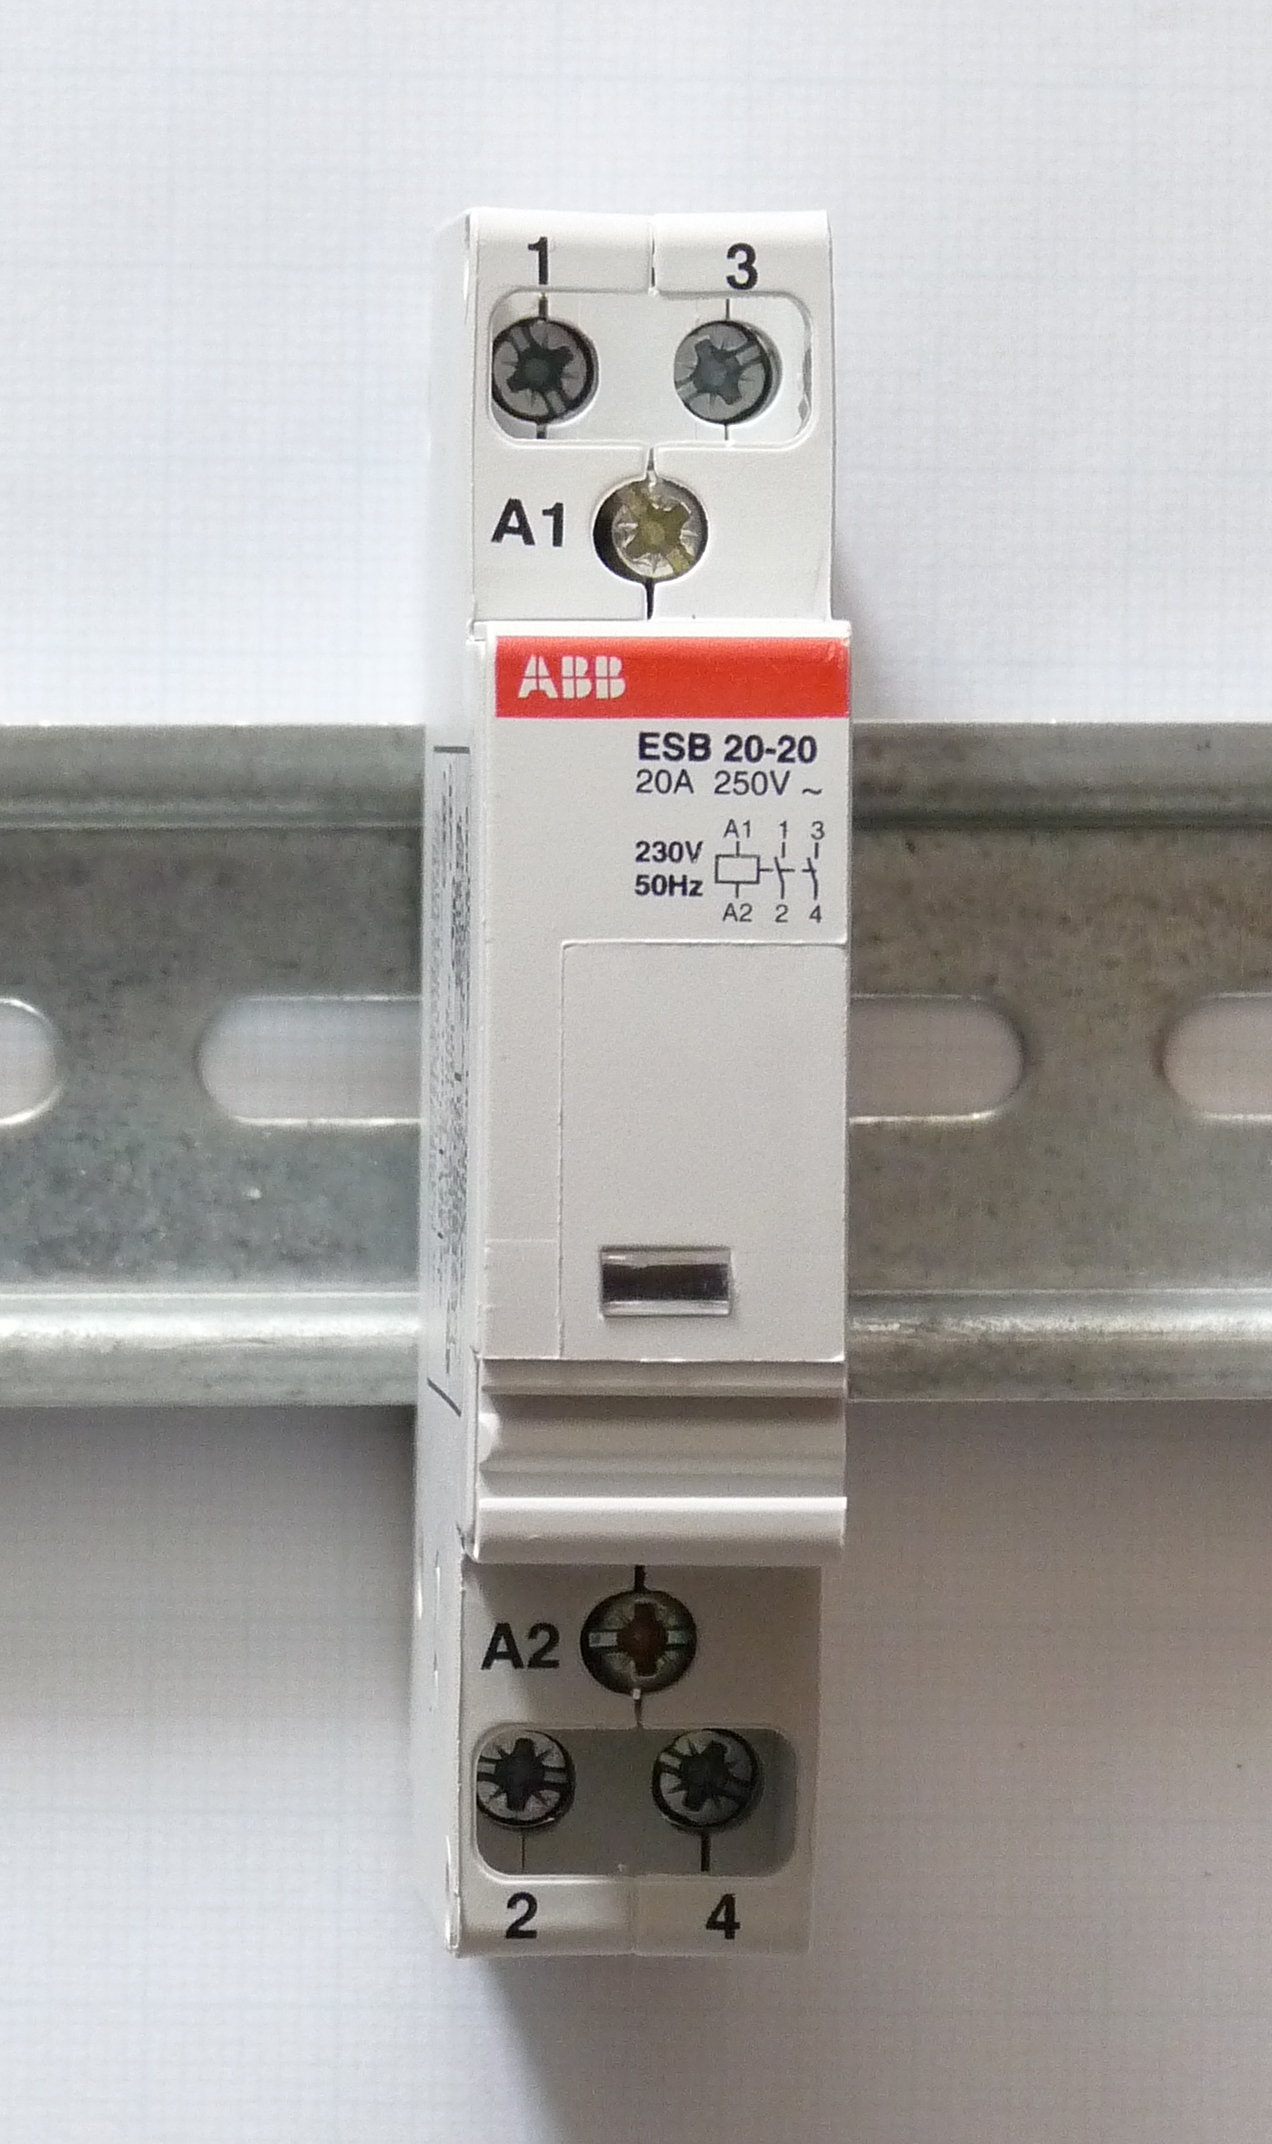 File:ABB ESB 20-20.JPG - Wikimedia Commons